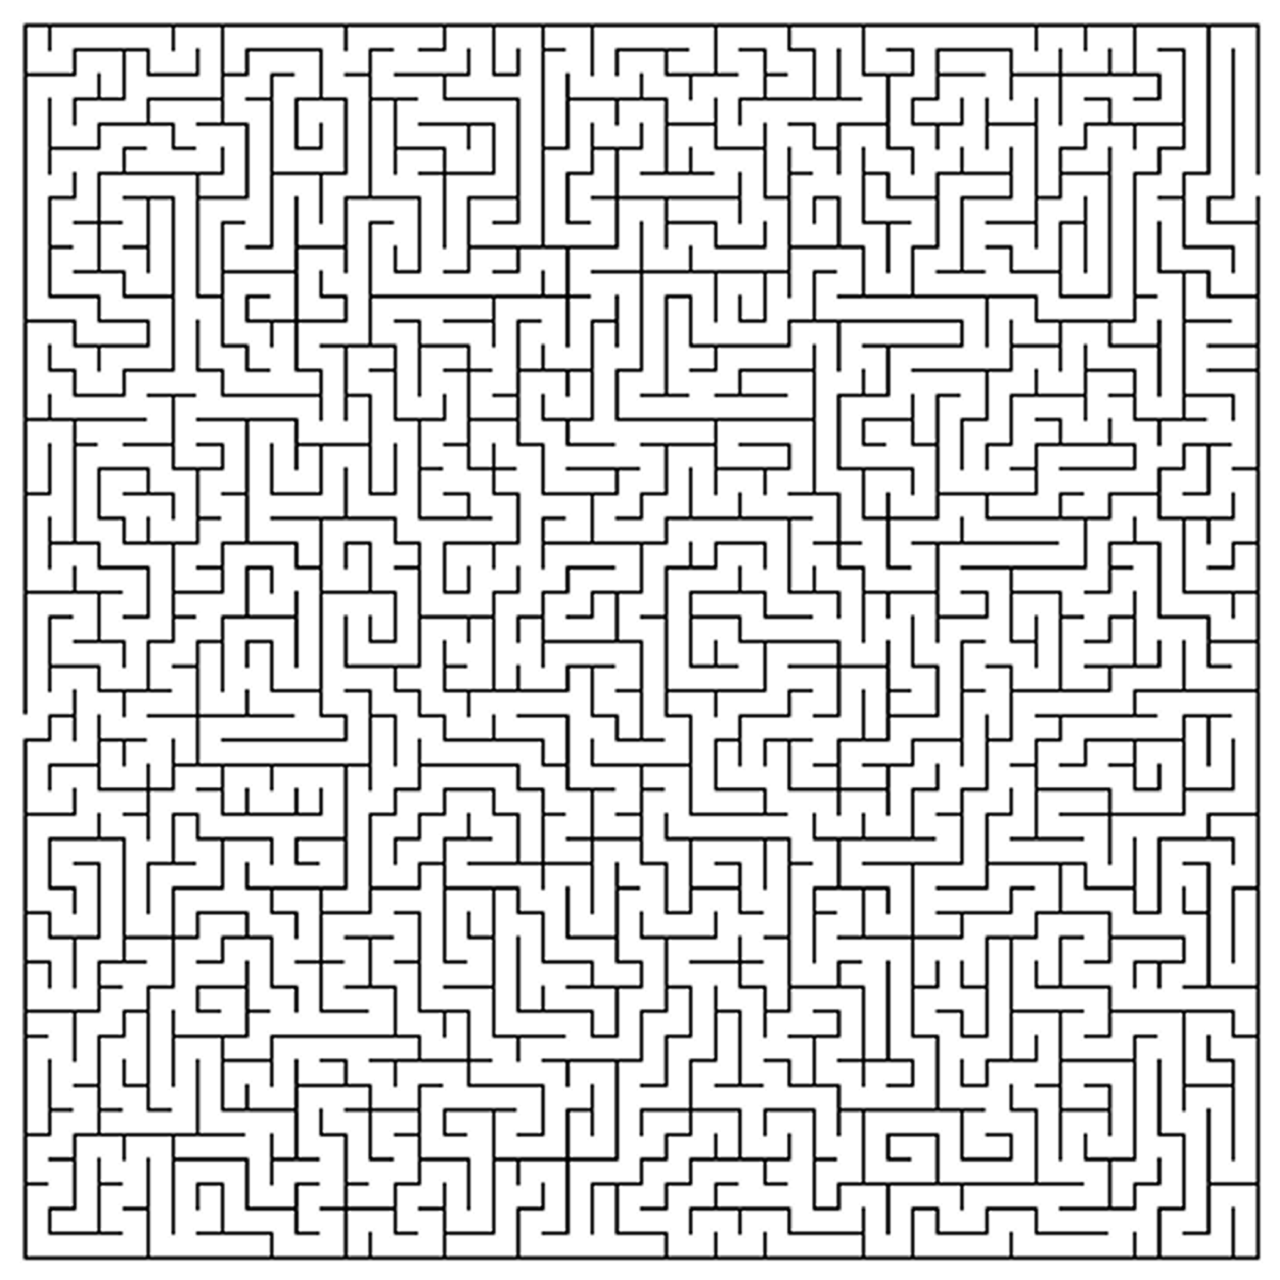 Printable Mazes For Adults Difficultextremely Hard Mazes